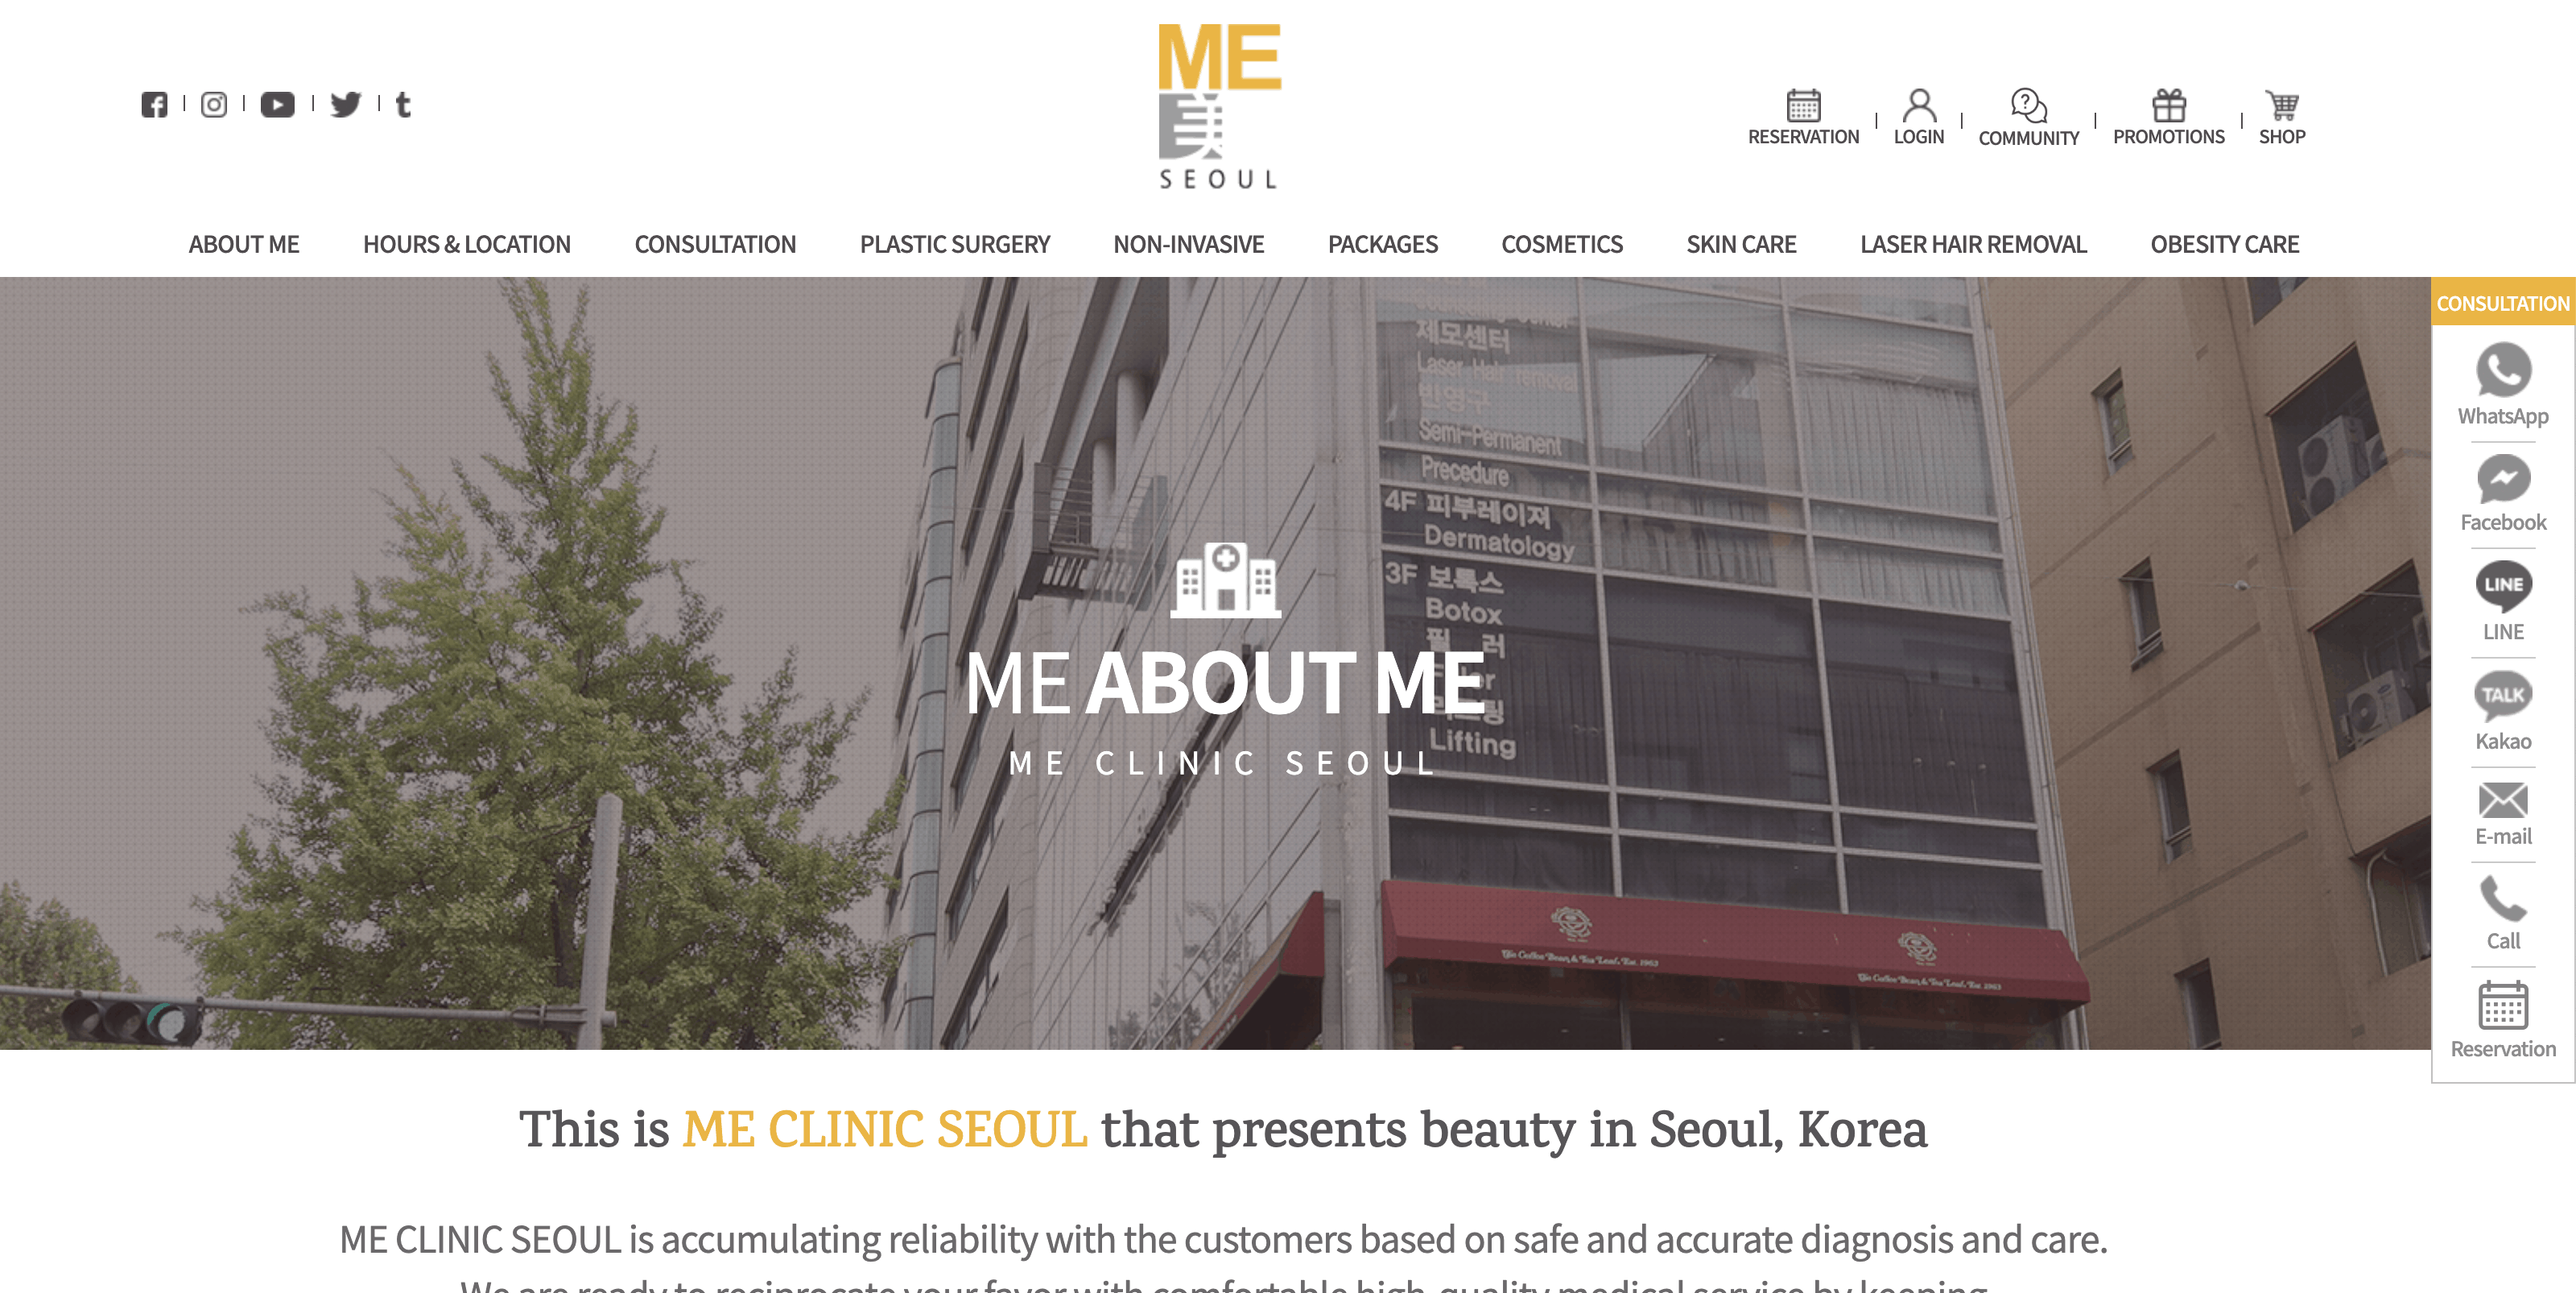 Me Clinic Seoul South Korea - Cosmetic Surgery Tourism Travel Thoughts With Covid 19